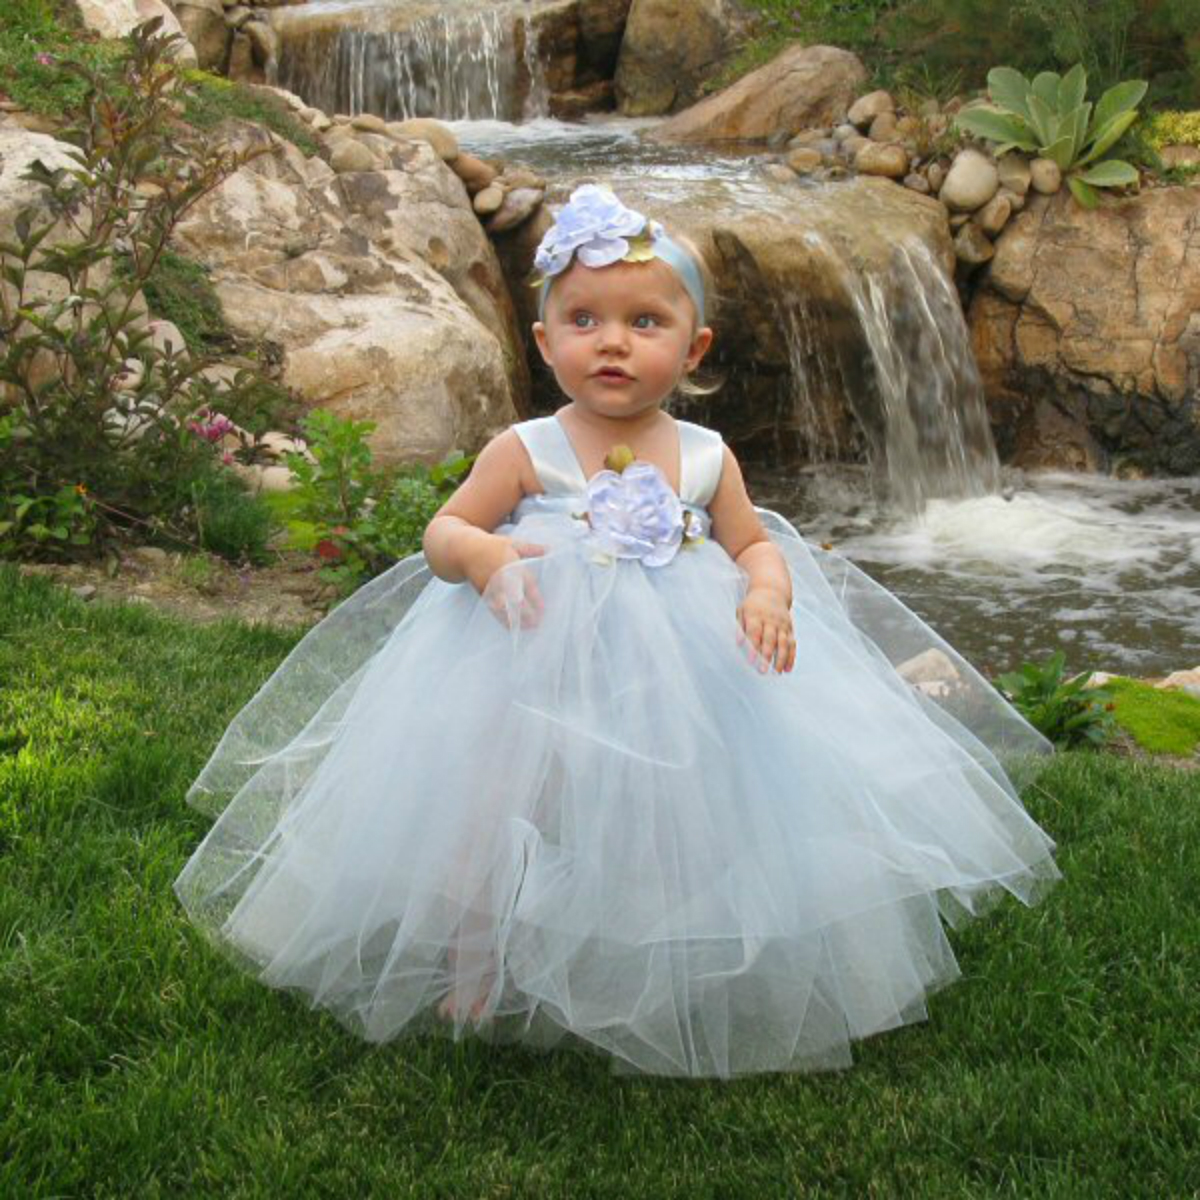 cinderella-tutu-dress-baby-easter-custom01